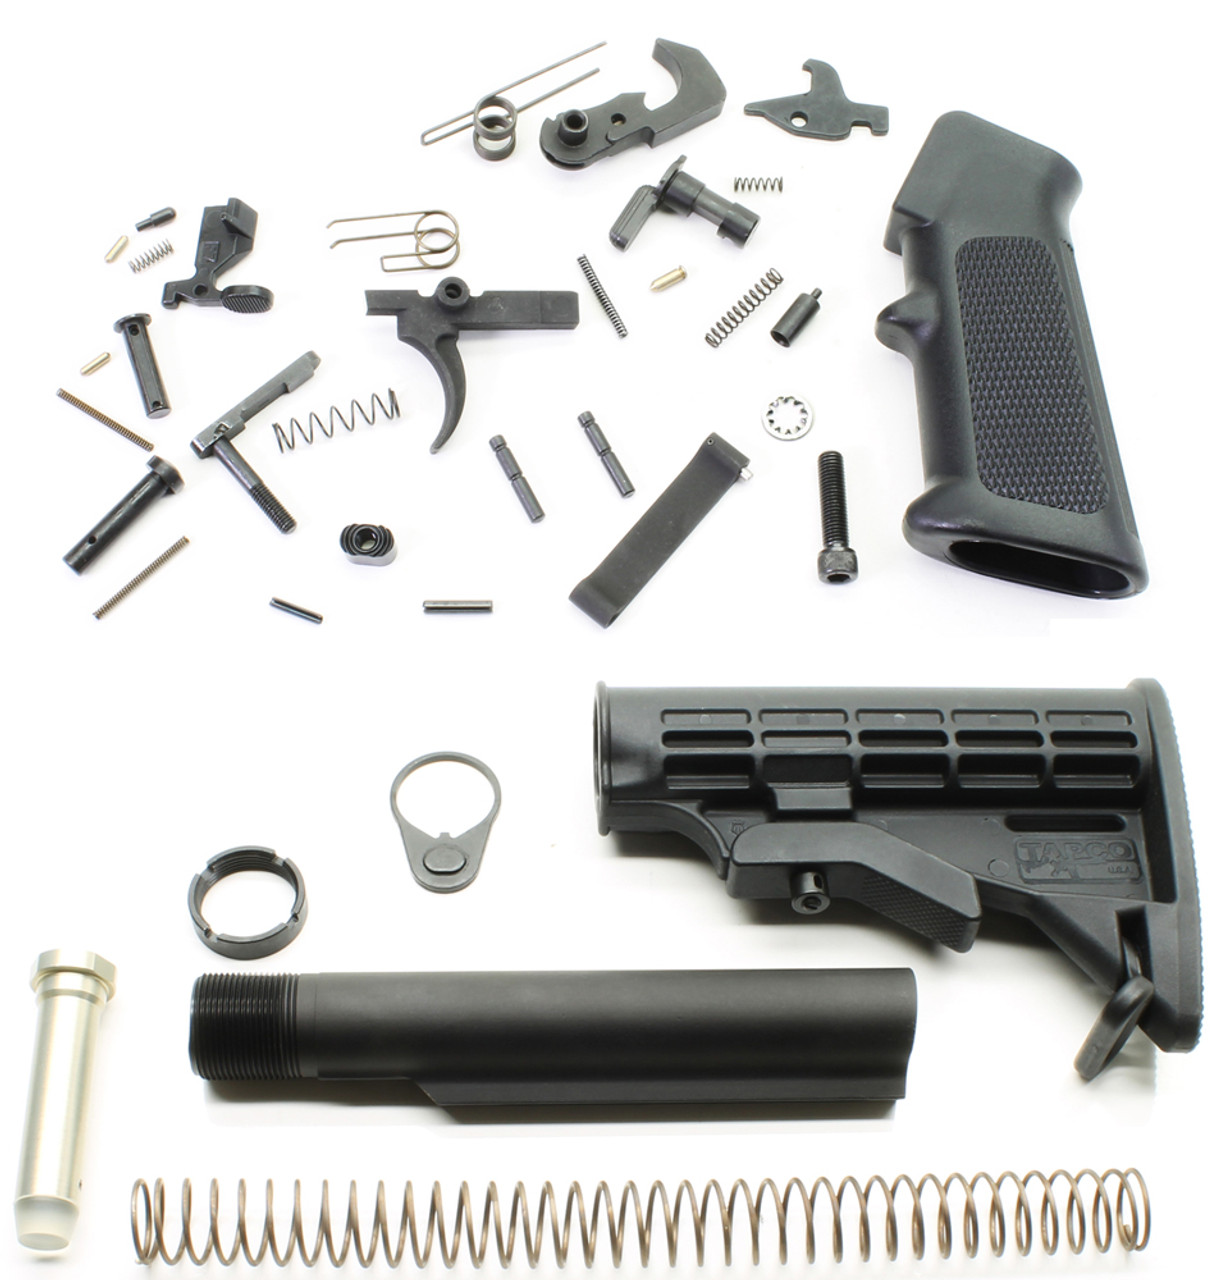 DPMS AR15 Lower Parts Kit + Commercial SAA AR15 Stock Assembly - Black